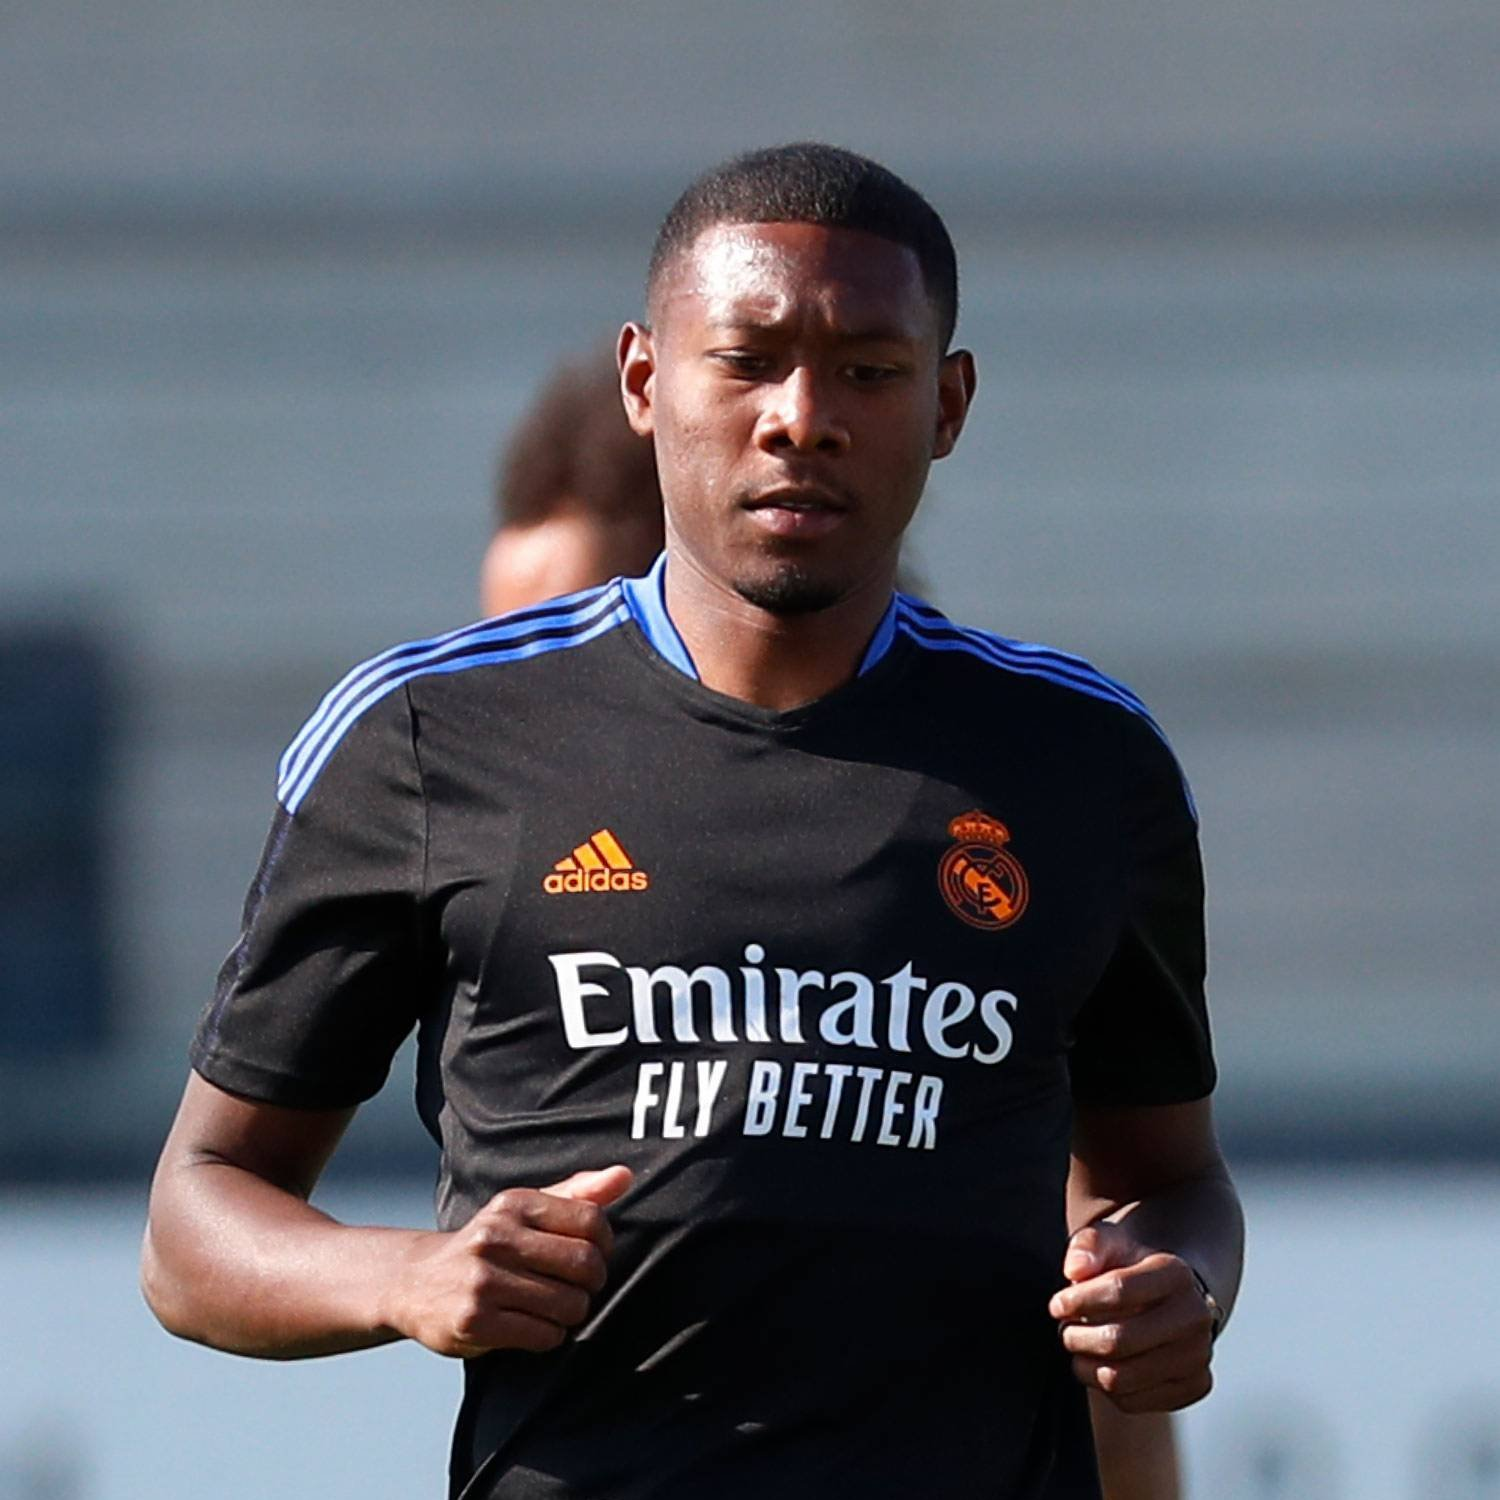 David Alaba during his first training with Real Madrid